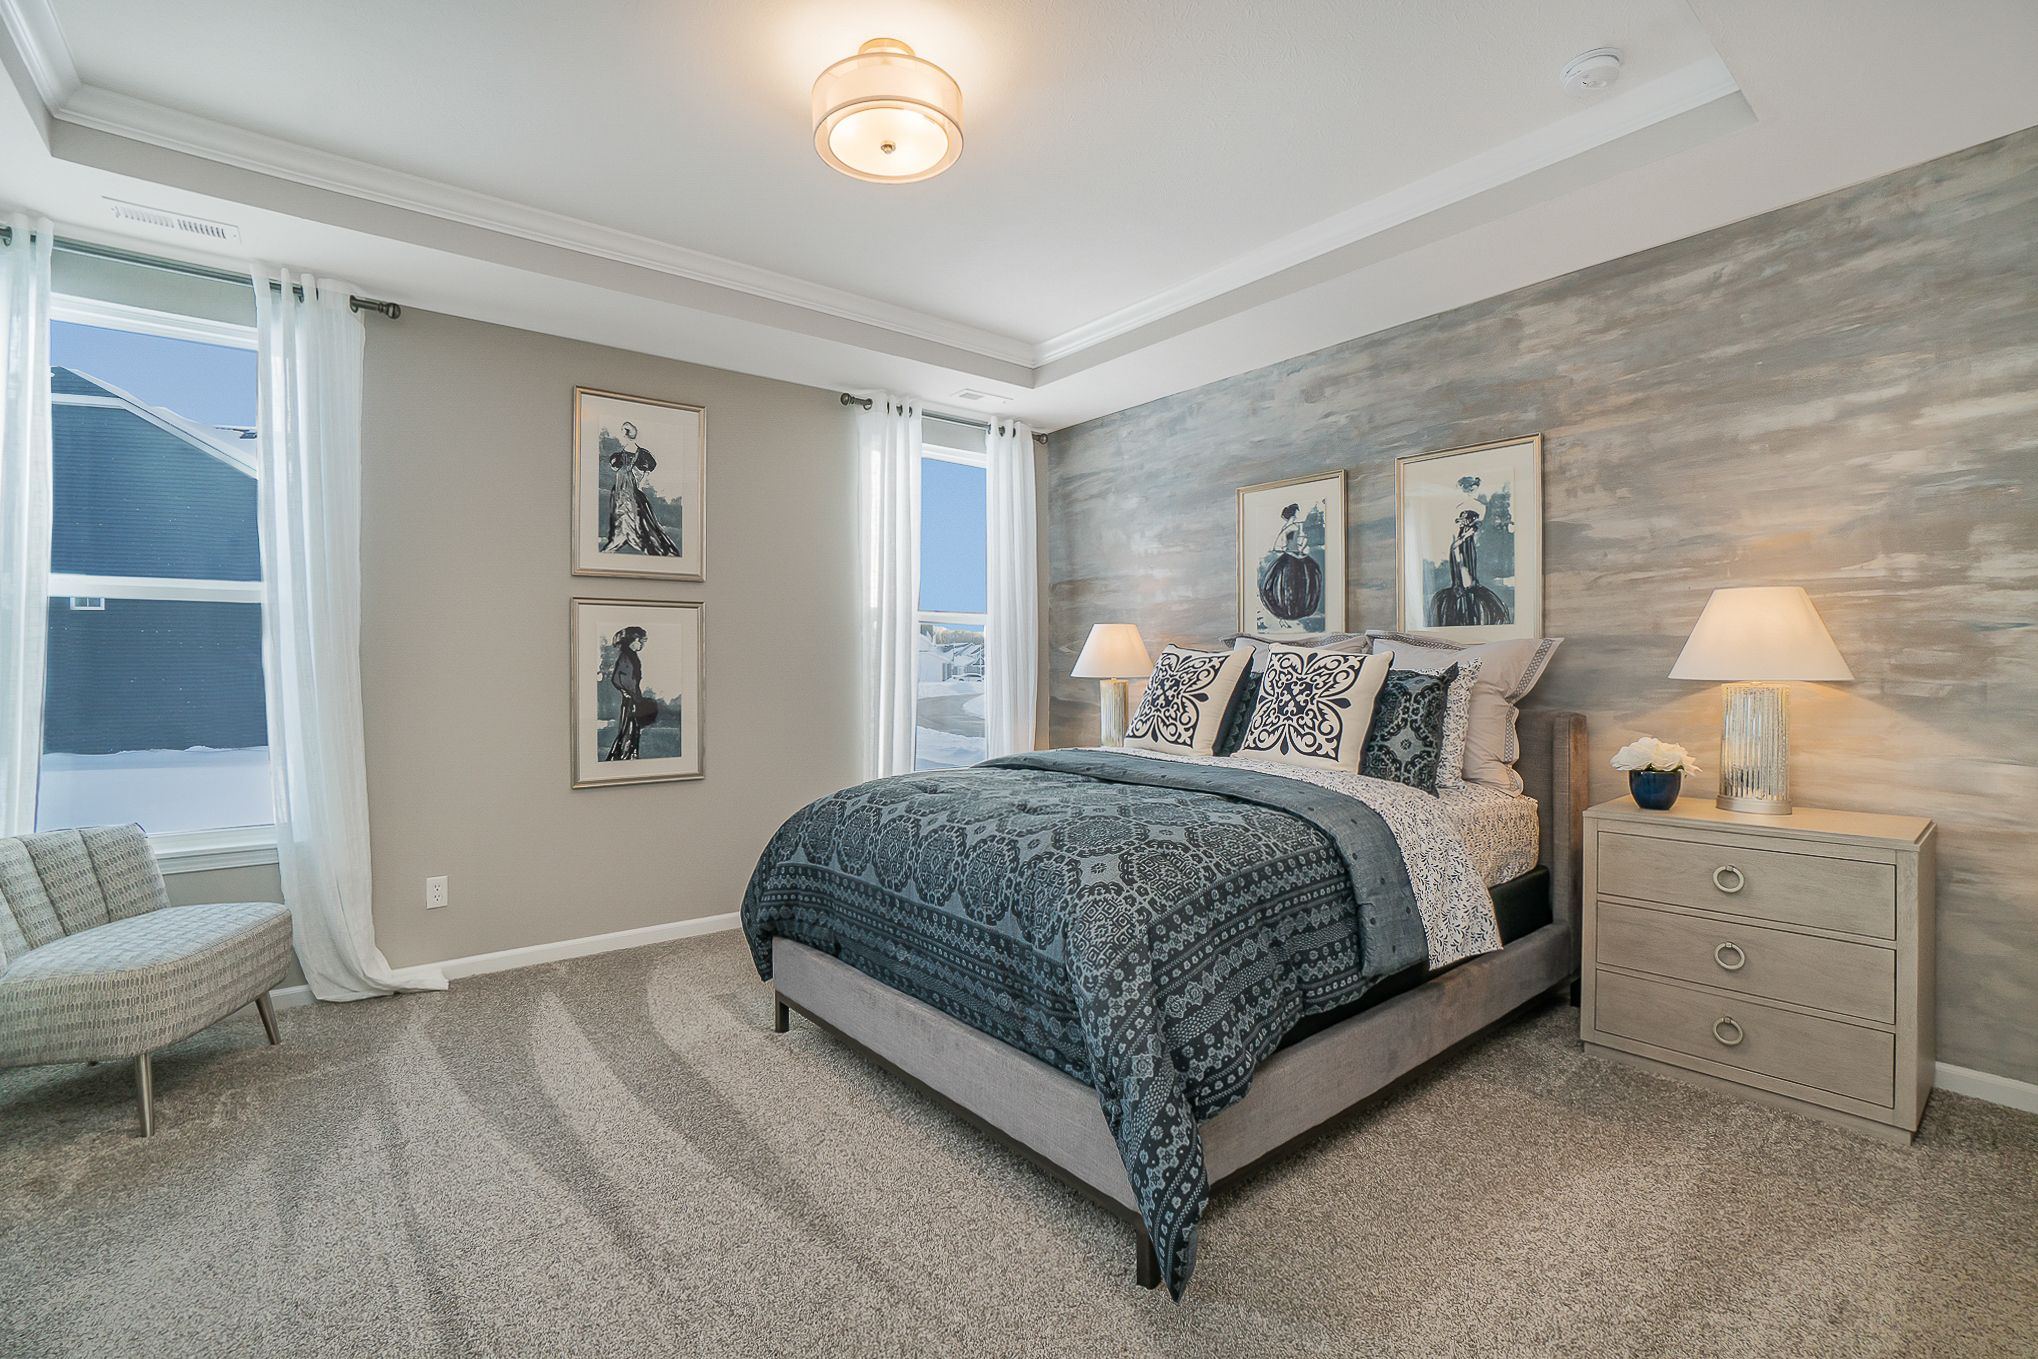 Bedroom featured in the Nottingham By Olthof Homes in Gary, IN